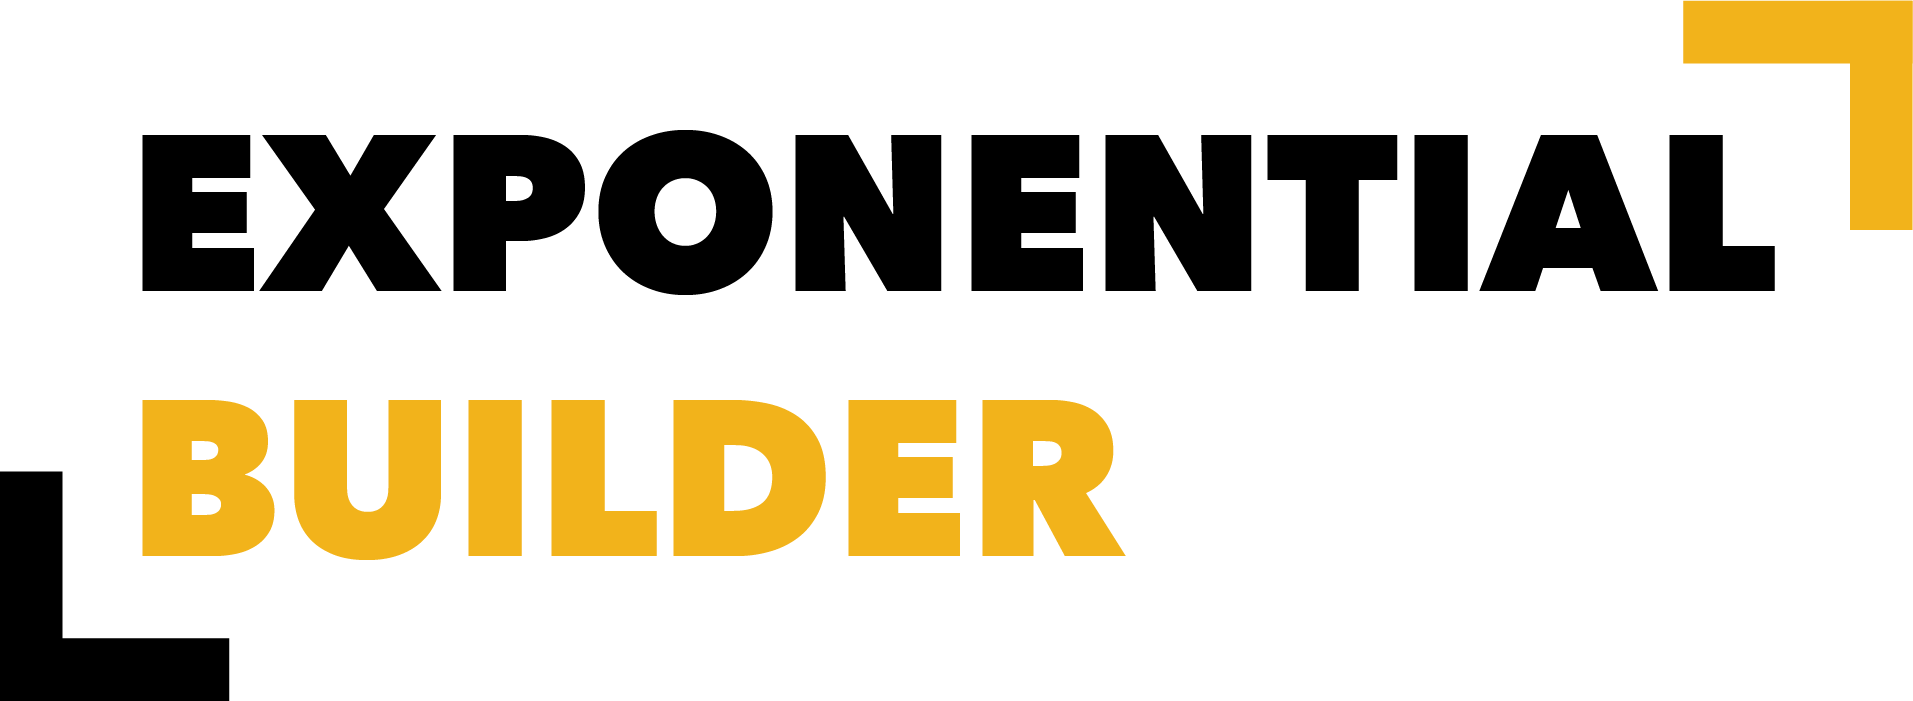 Exponential Builder Marketing Agency Uses Cutting-Edge Strategy to Help Home Improvement Companies Scale Beyond 7 & 8 Figures